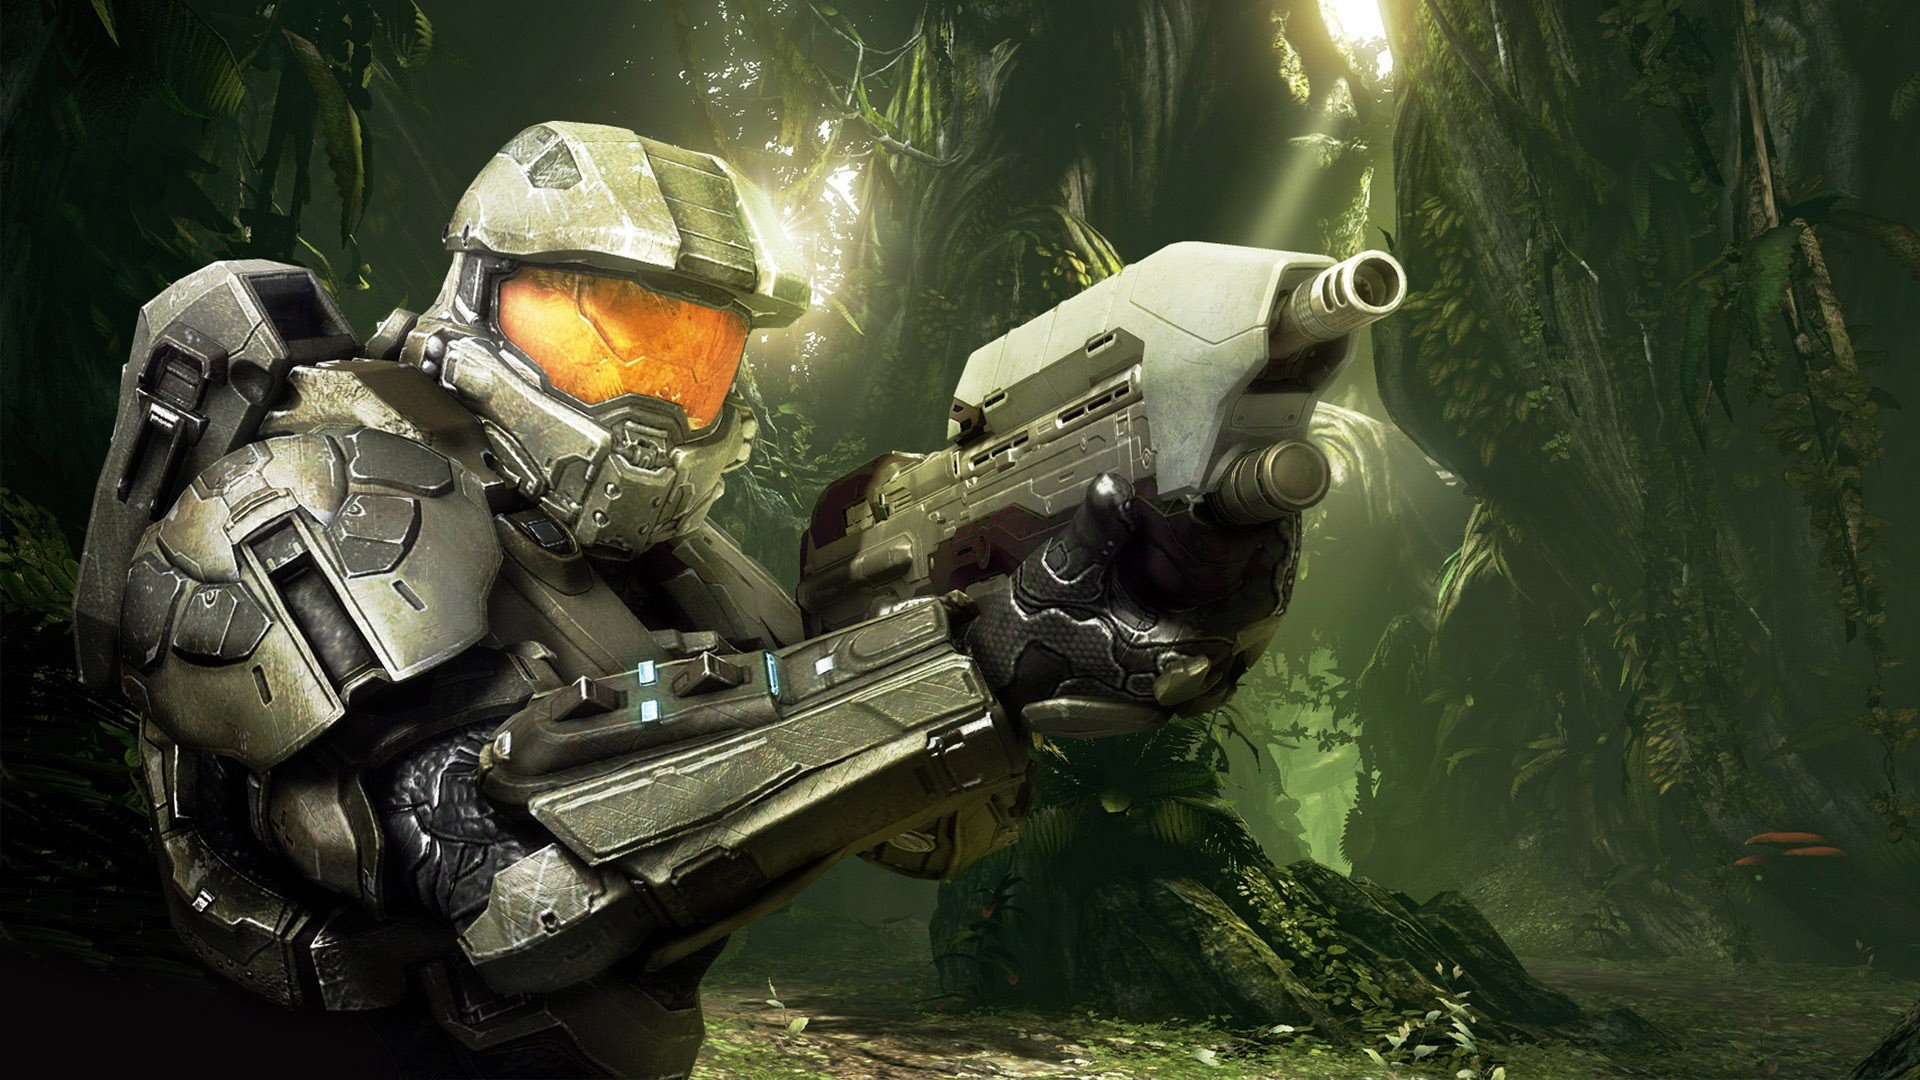 HD Halo 4 Wallpapers 1920x1080